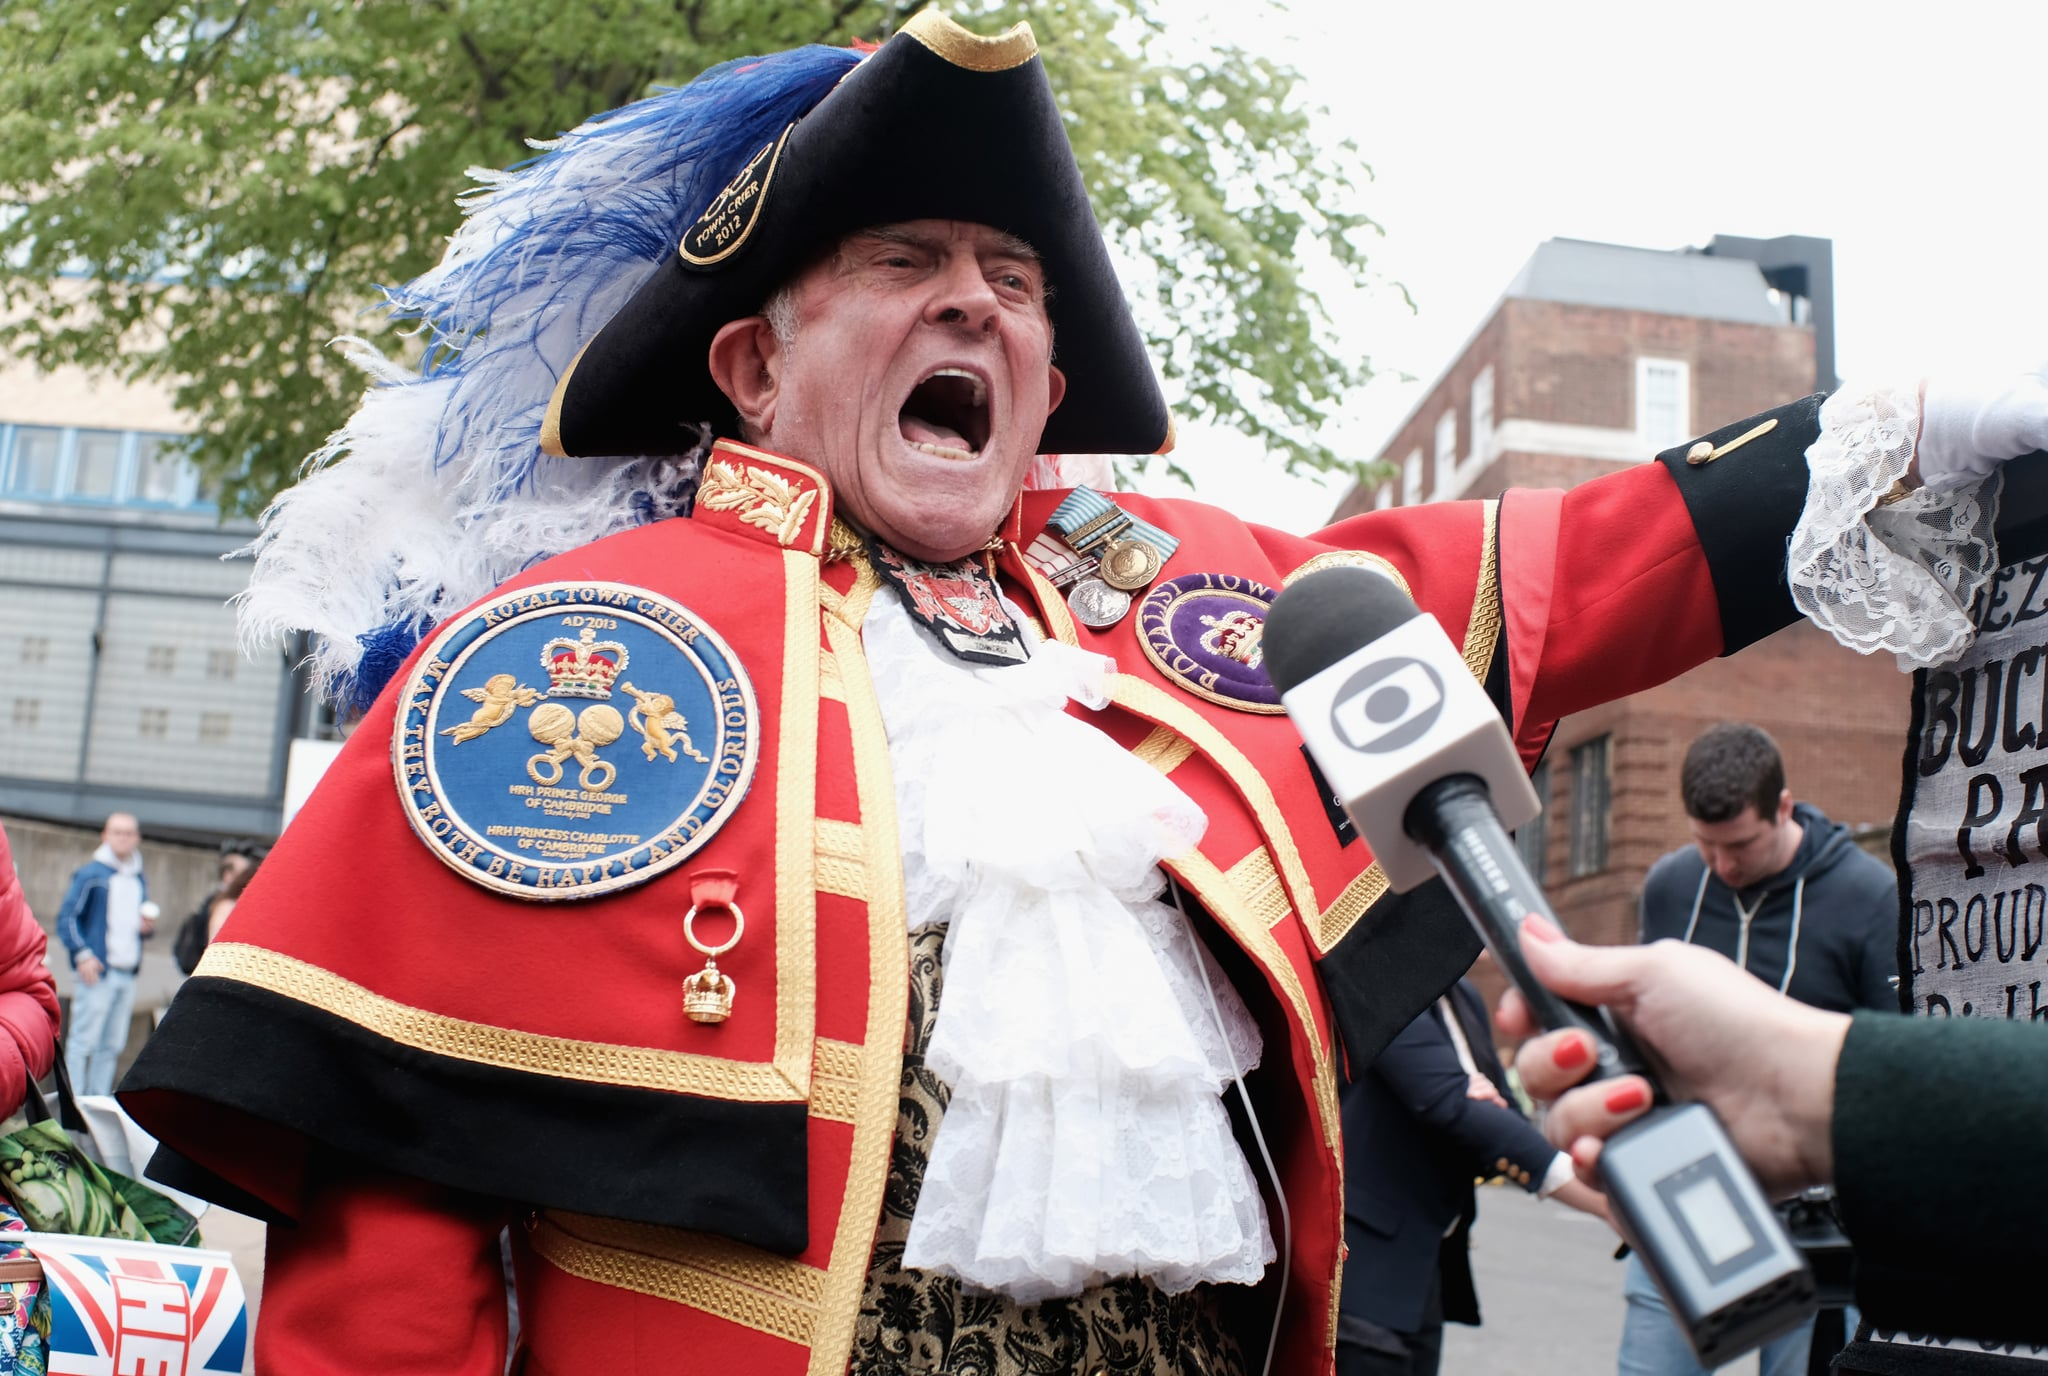 LONDON, ENGLAND - APRIL 23:  A Town Crier makes the announcement that Catherine, Duchess of Cambridge has given birth to a baby boy, outside the Lindo Wing at St Mary's Hospital on April 23, 2018 in London, England. The Duchess safely delivered a son at 11:01 am, weighing 8lbs 7oz, who will be fifth in line to the throne.  (Photo by Mike Marsland/ WireImage)